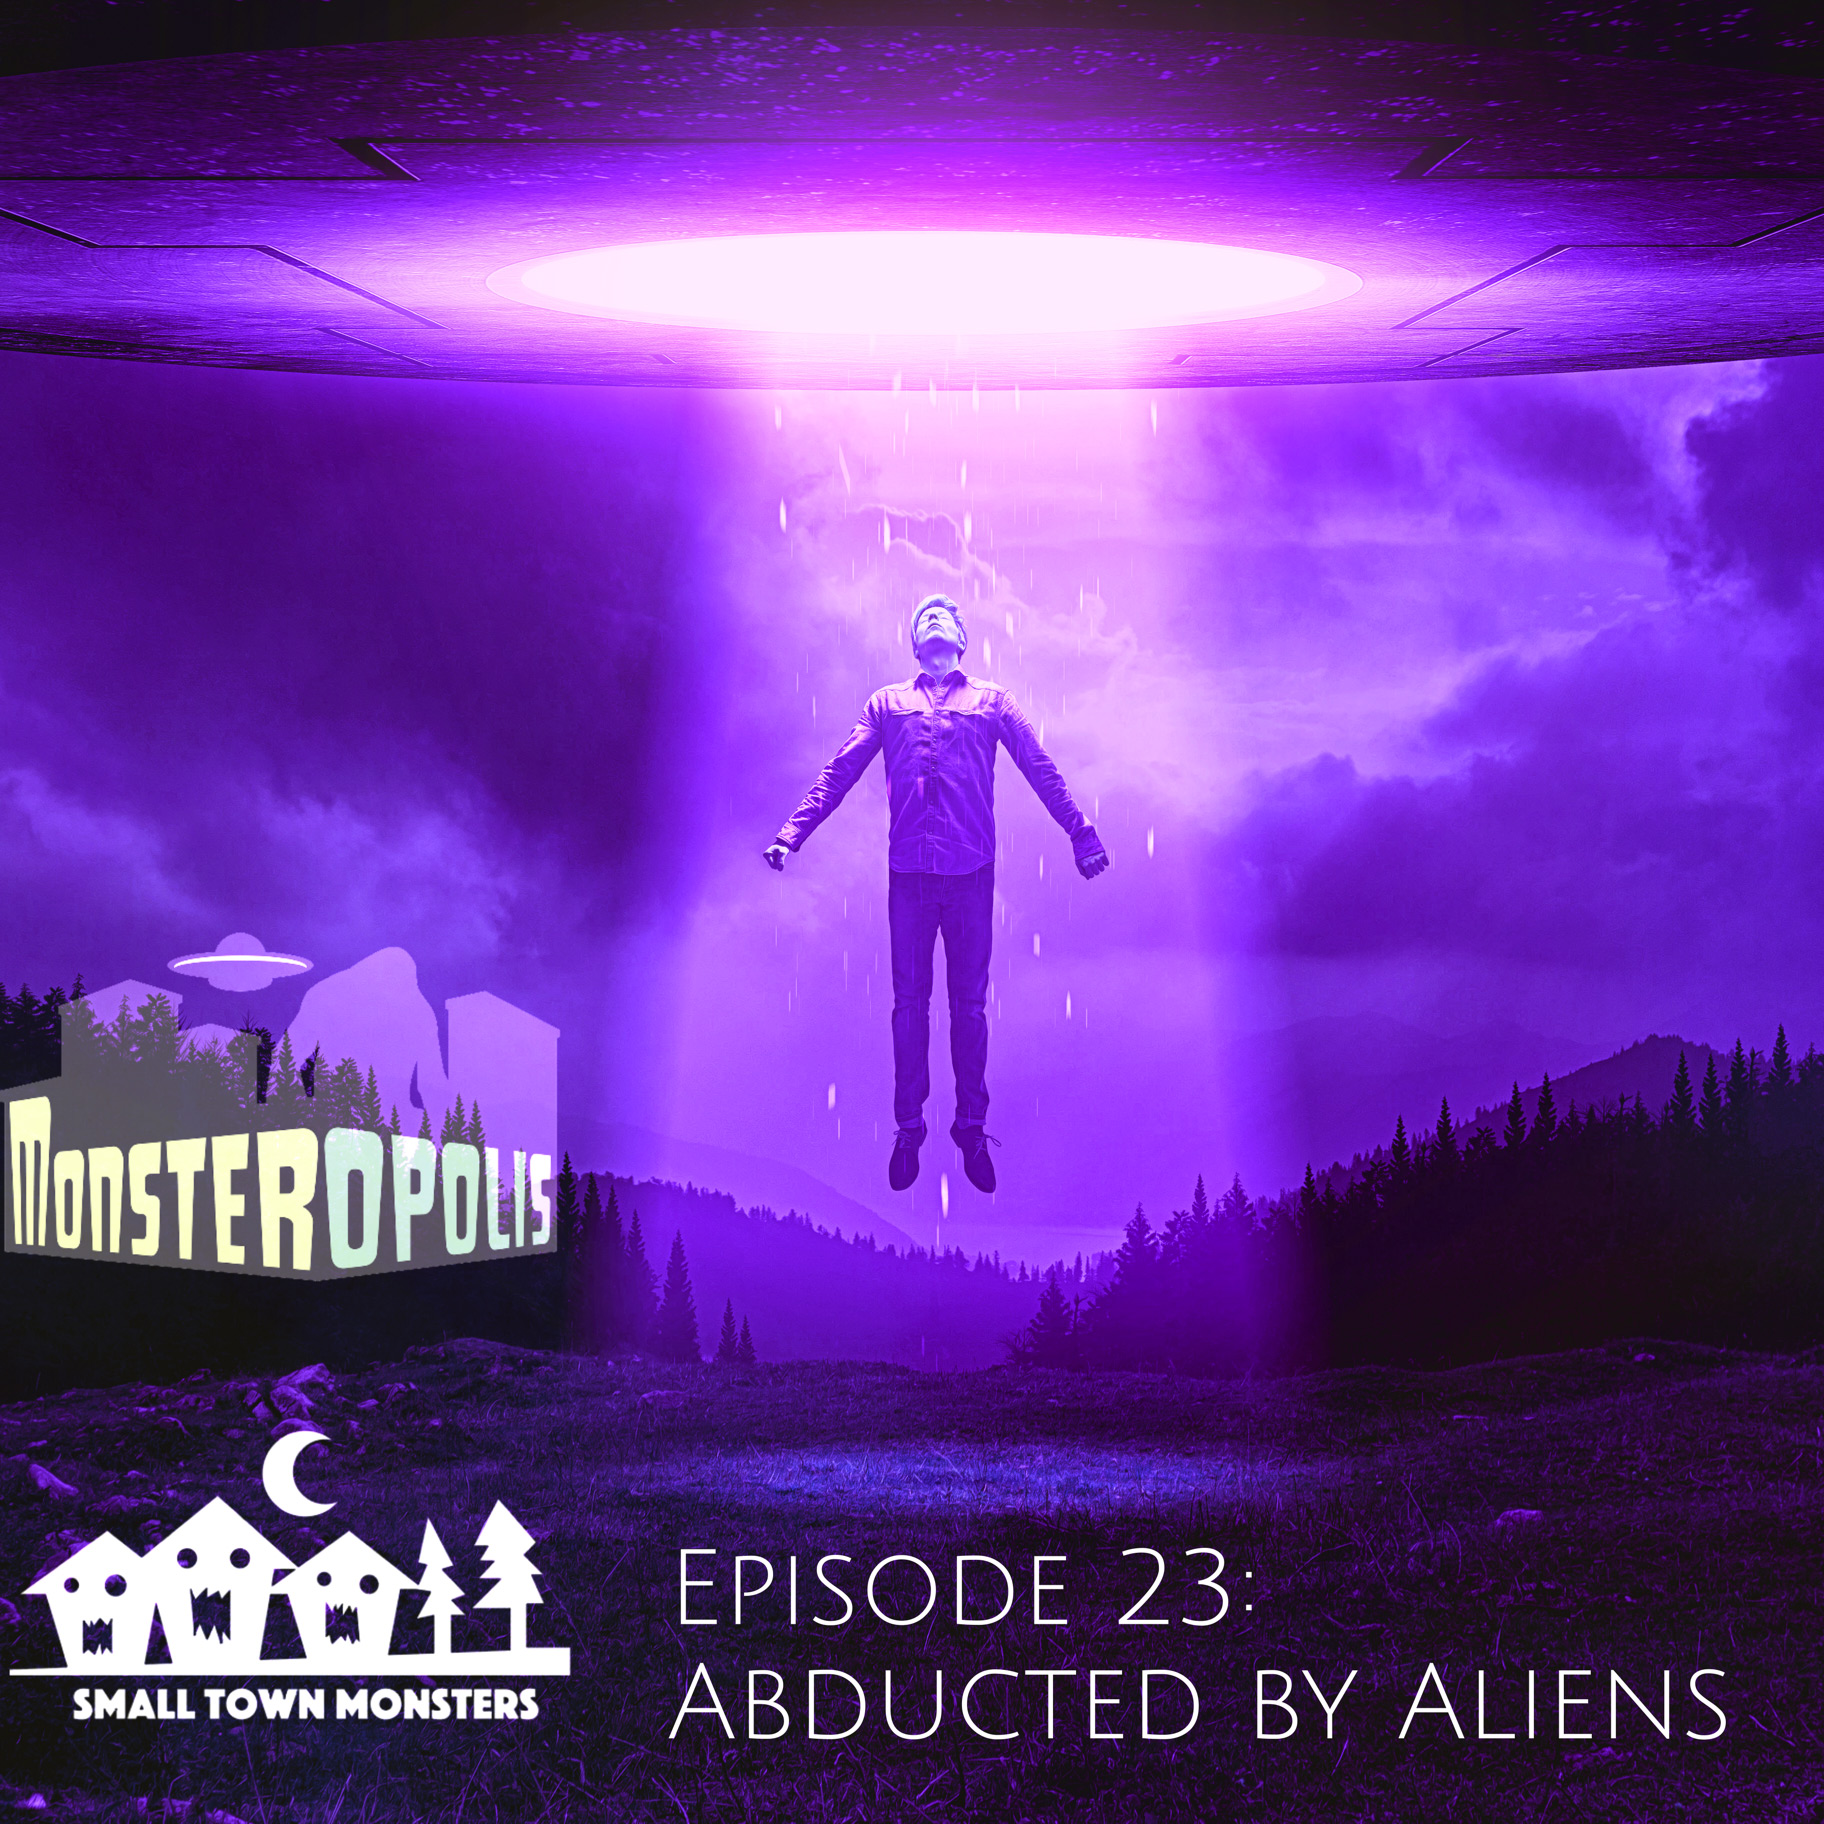 Episode 23: Abducted by Aliens